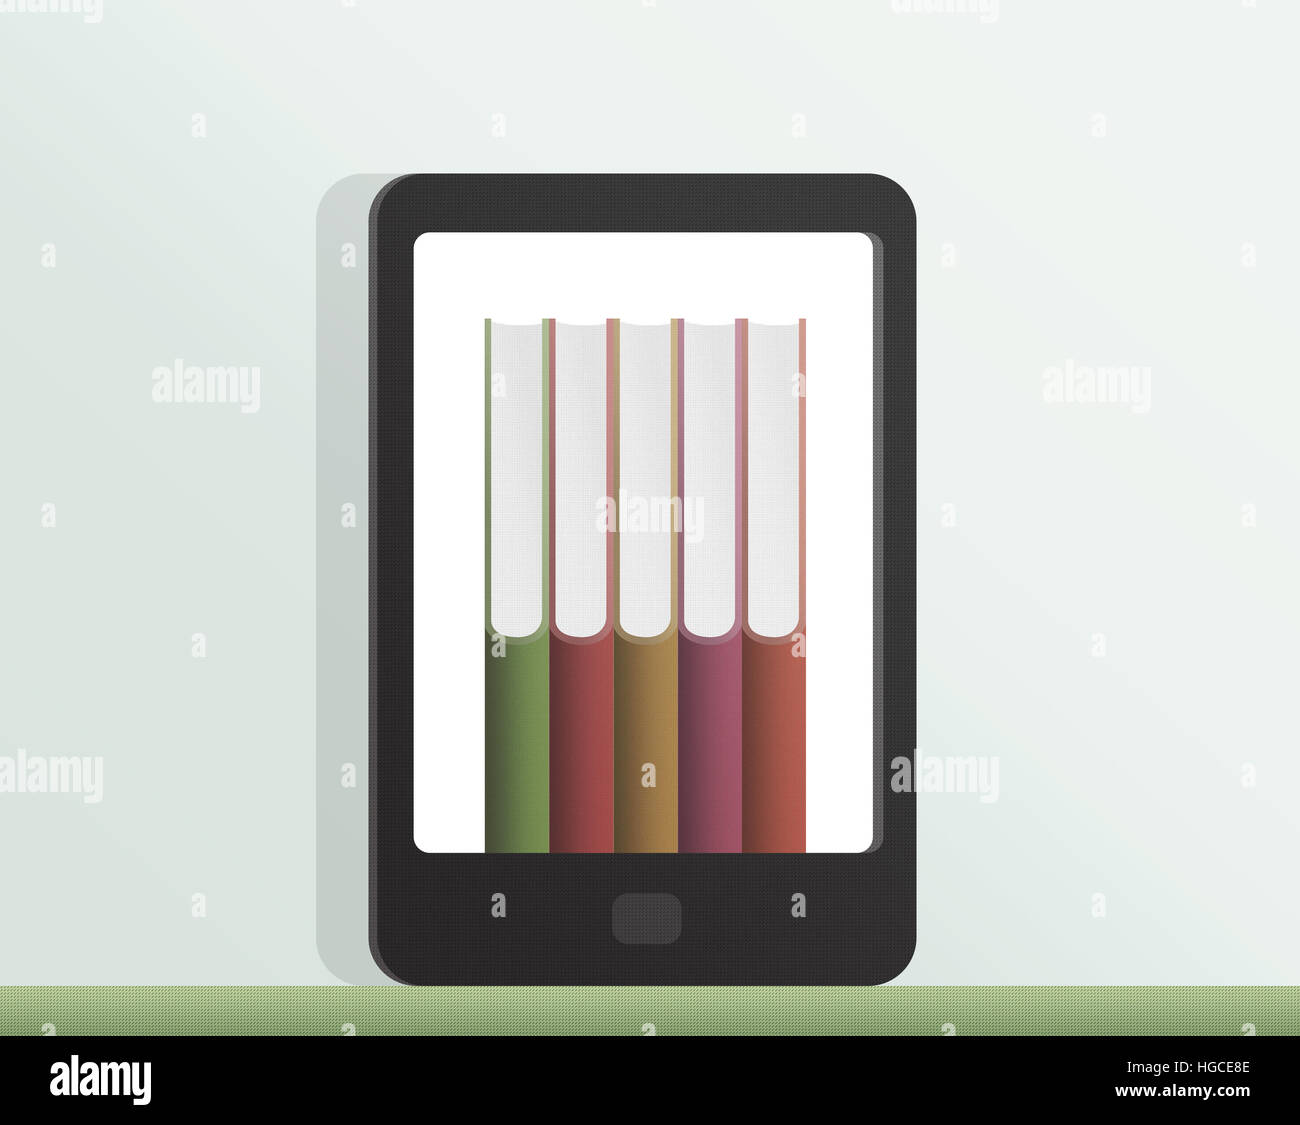 E-book, books illustration - Stock Image